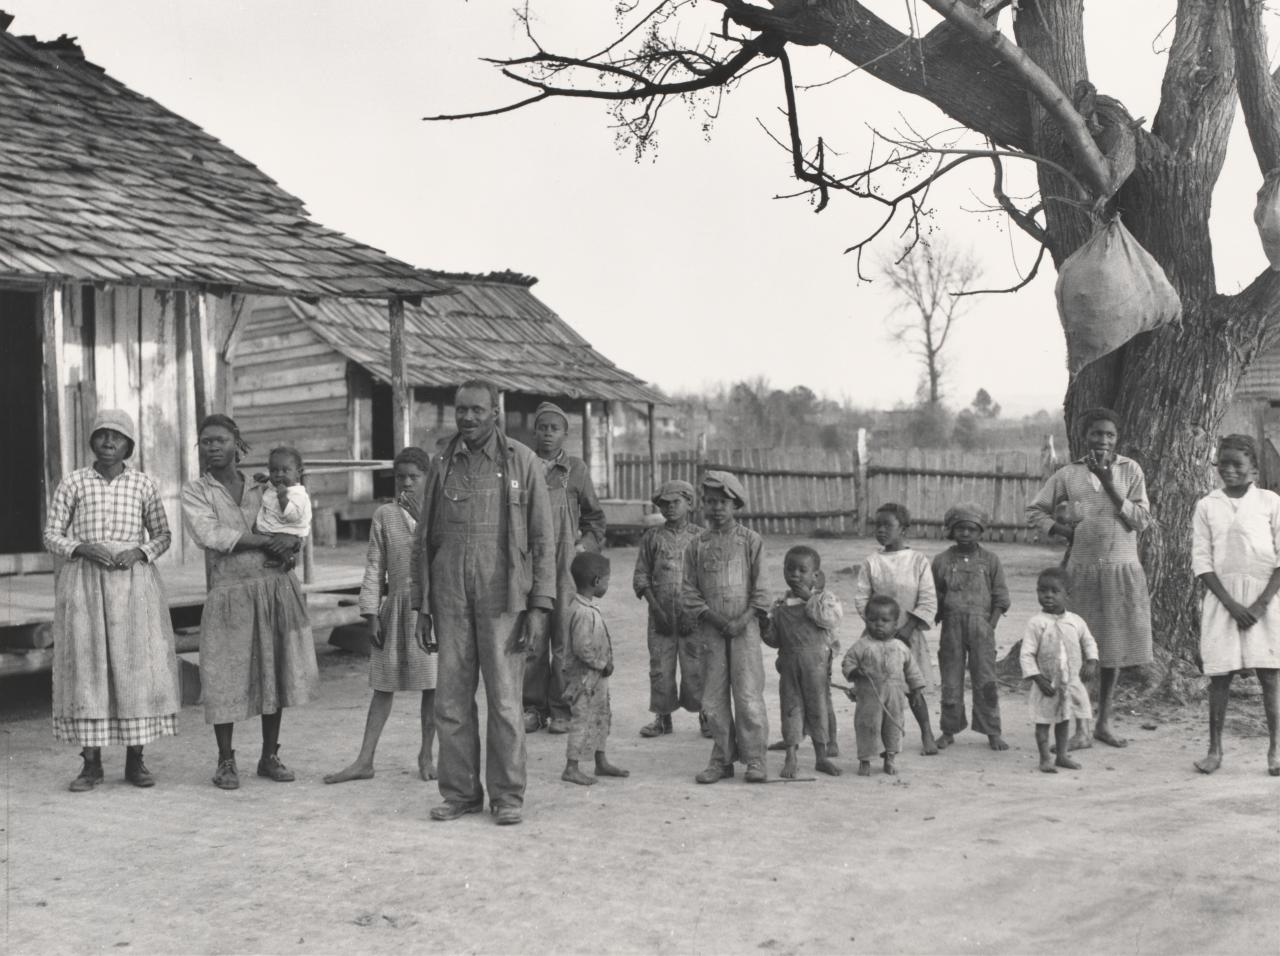 Descendants of former slaves of the Pettway Plantation, Gee's bend, Alabama